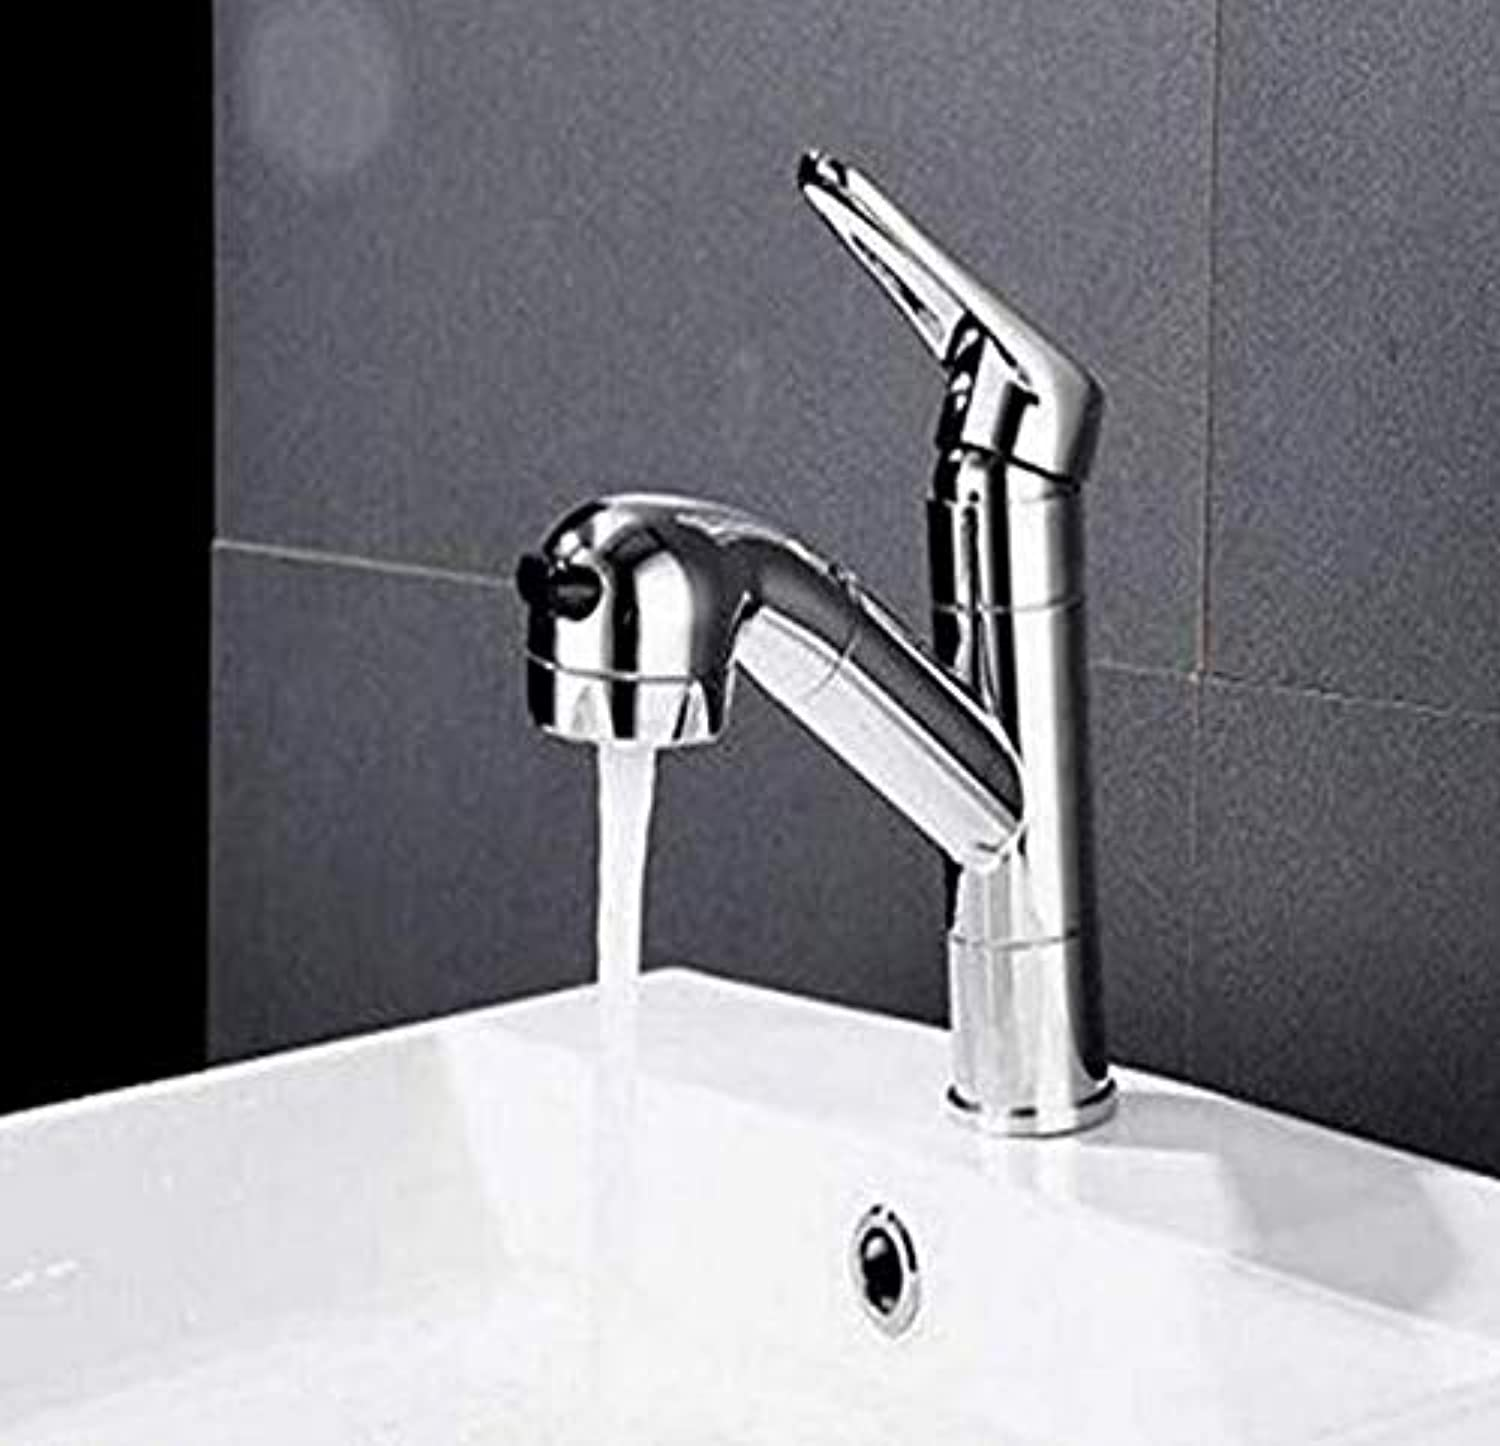 Retro Faucet Taps Copper Pull Faucet Hot and Cold redatable